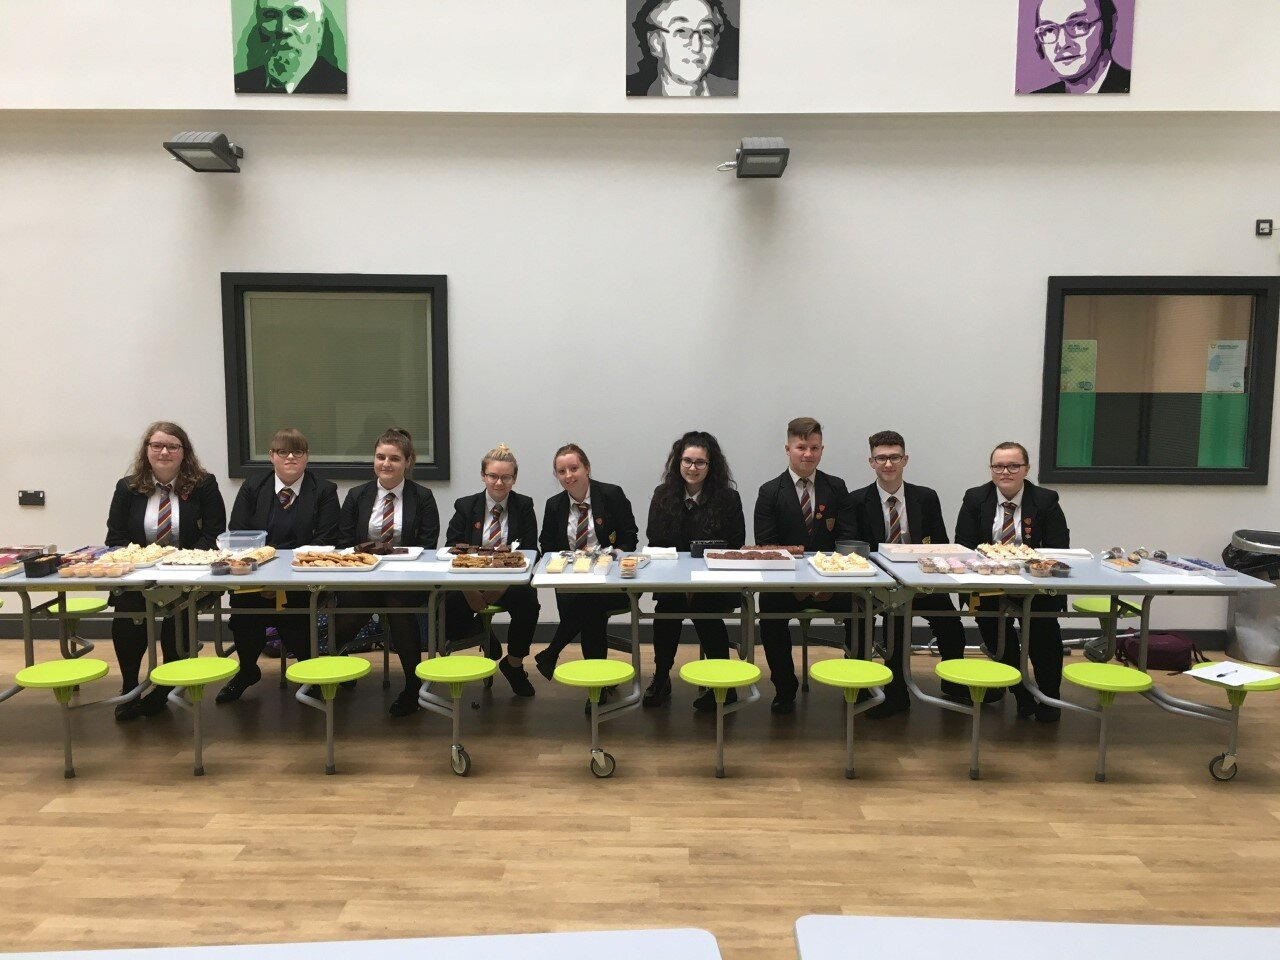 The senior prefect team selling cakes, biscuits, and doughnuts in support of Macmillan Coffee Morning 2019, they raised £135 in total. Da Iawn!  #StriveBelieveAchieve